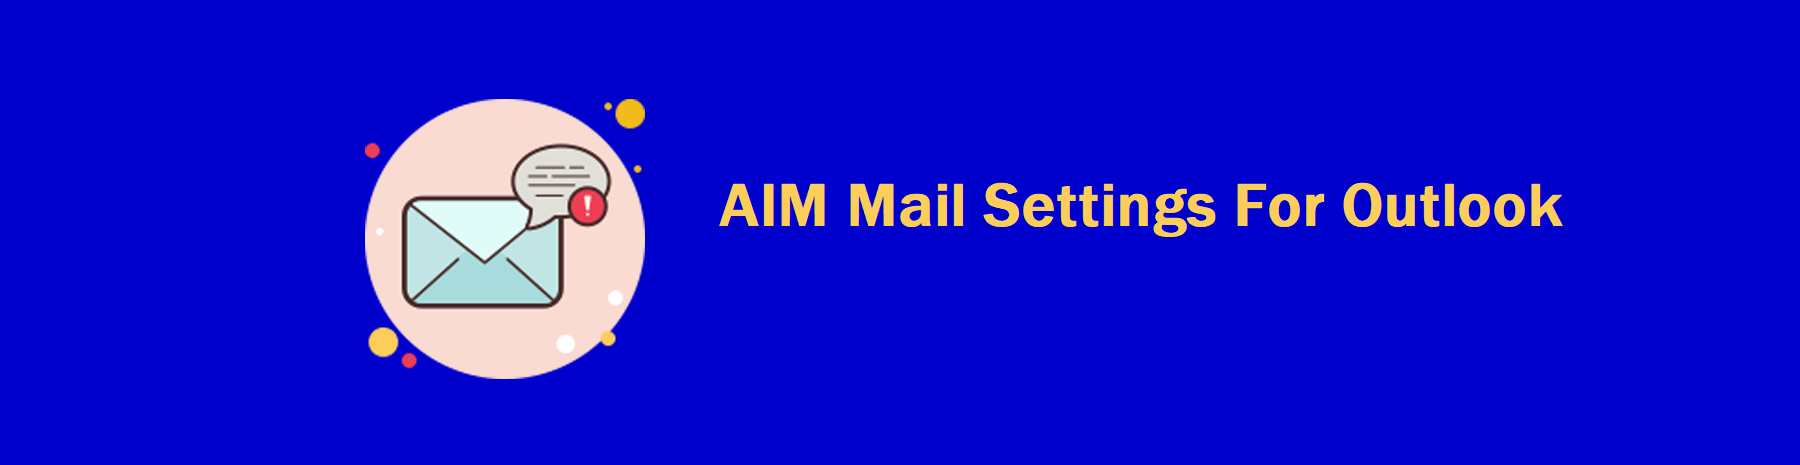 AIM Mail Settings For Outlook